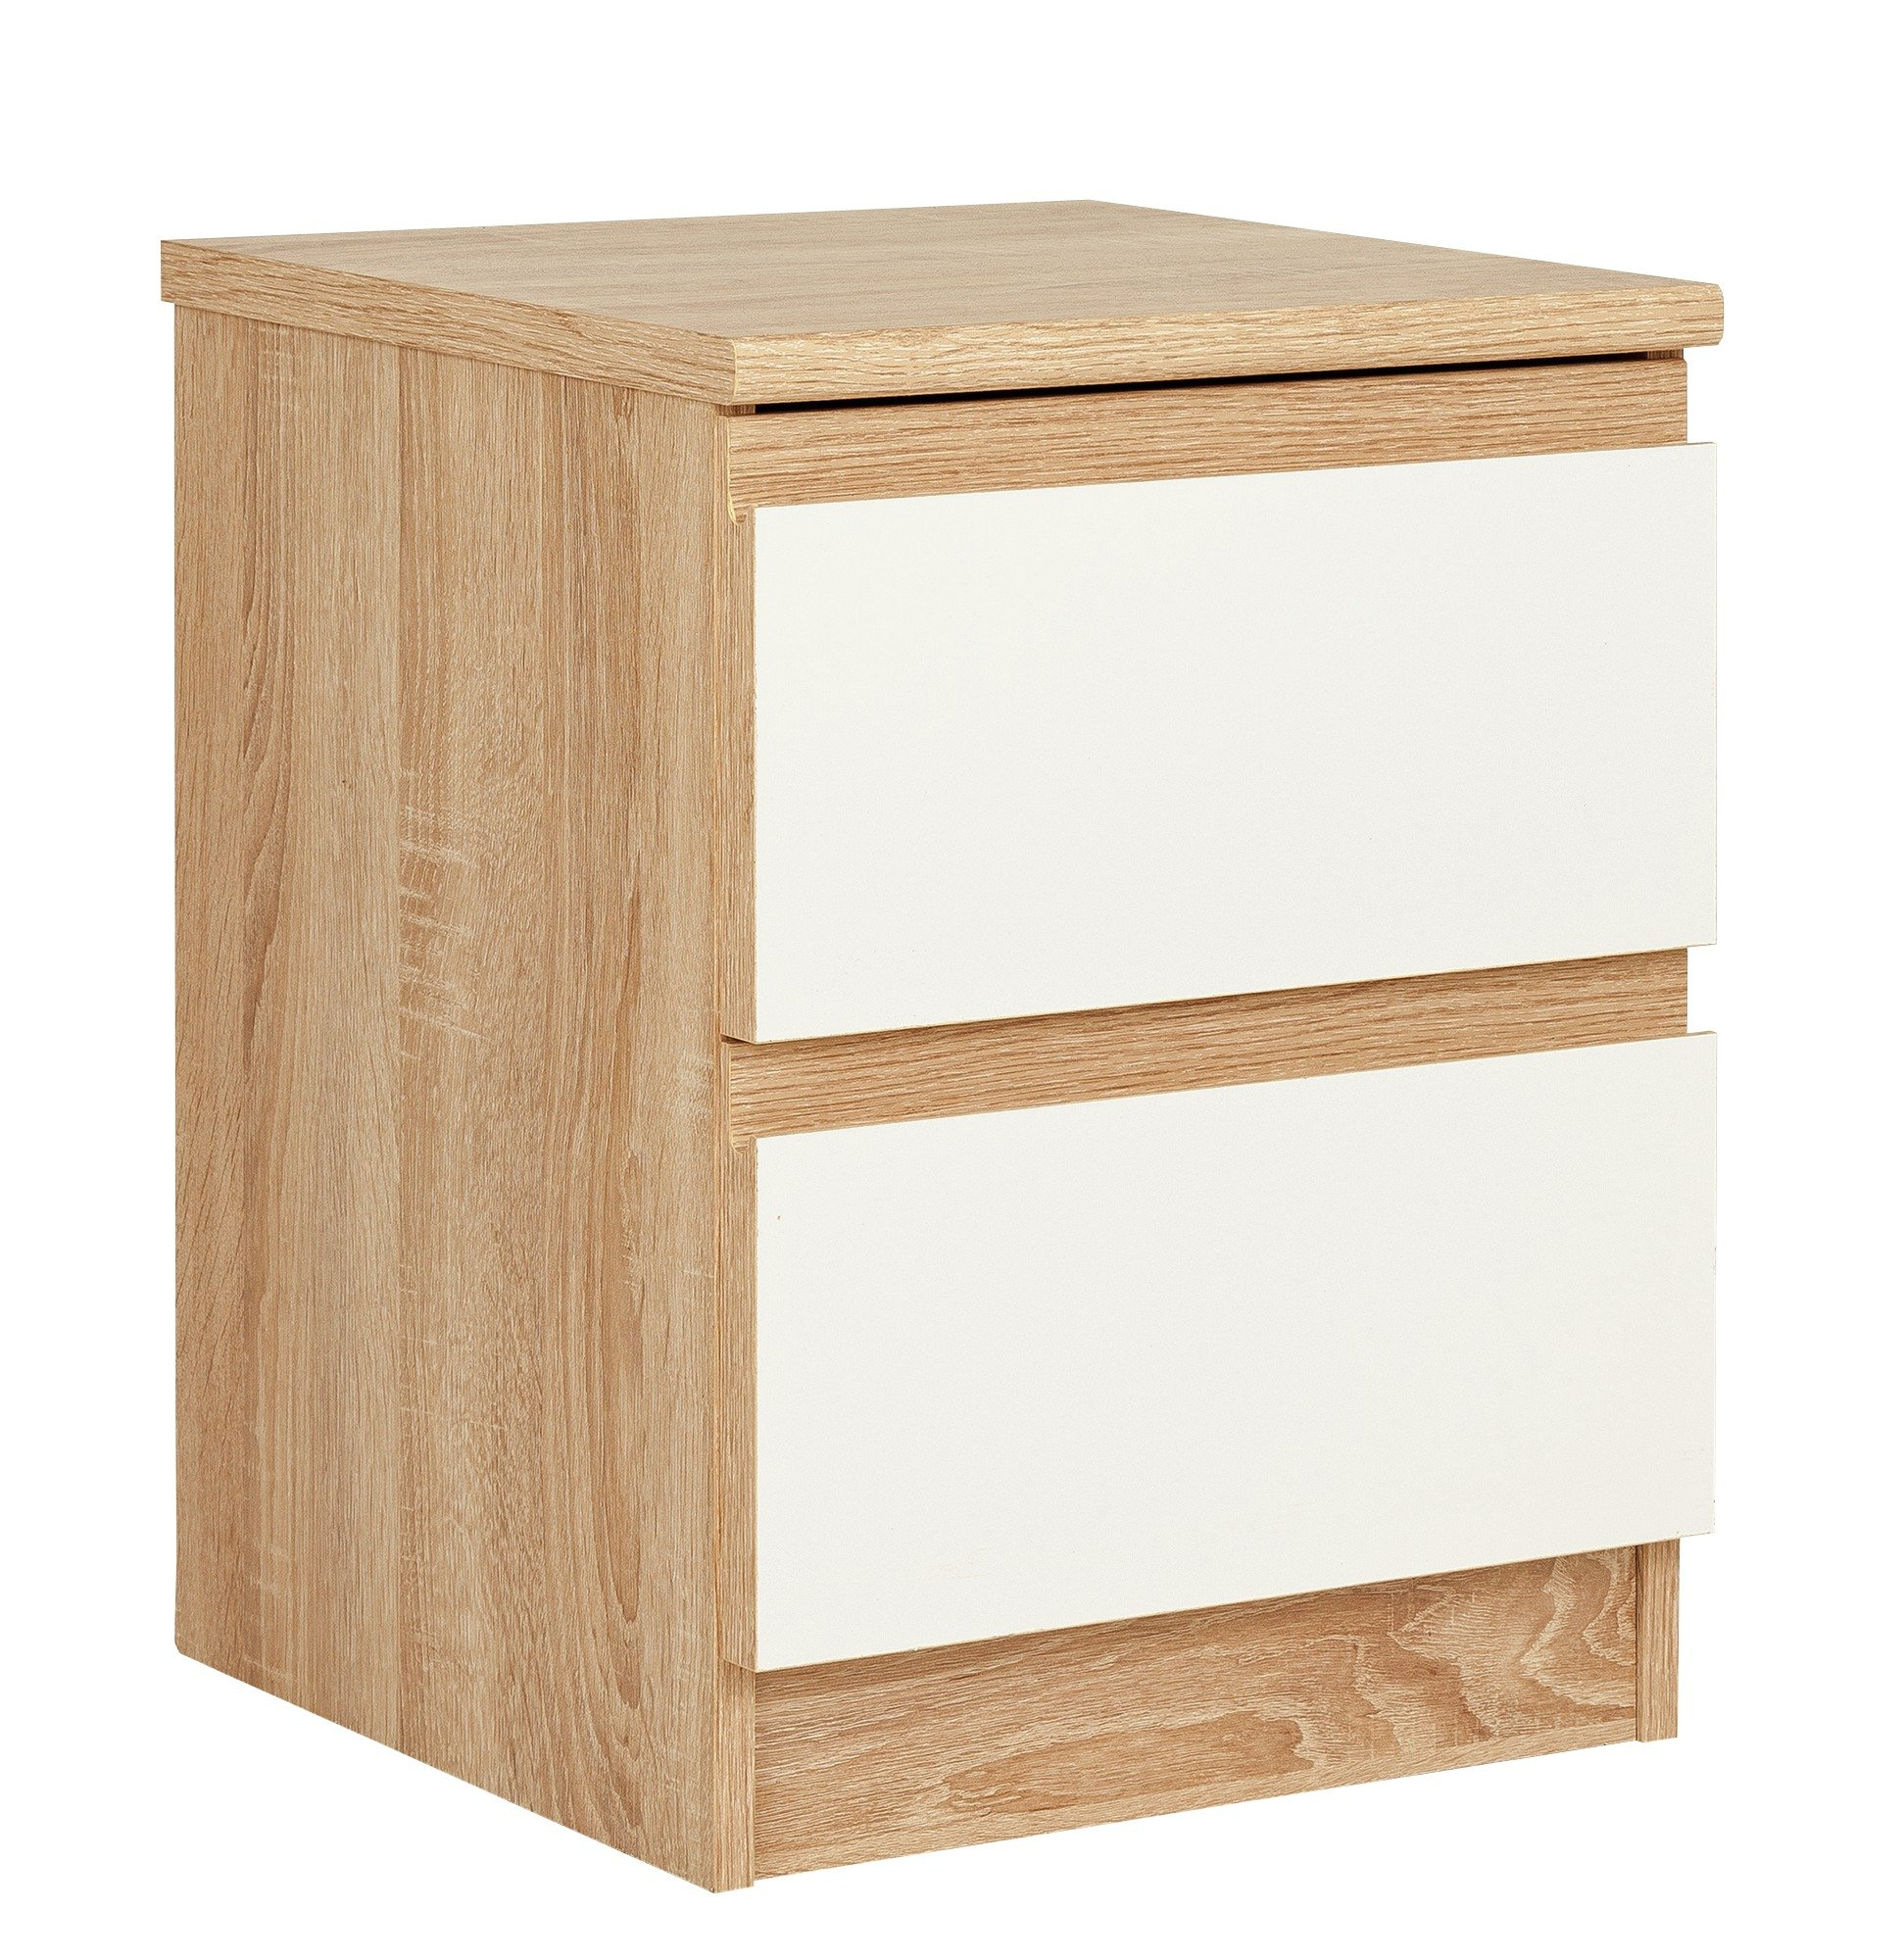 Avenue 2 Drawer Bedside Chest - Oak Effect and White Gloss